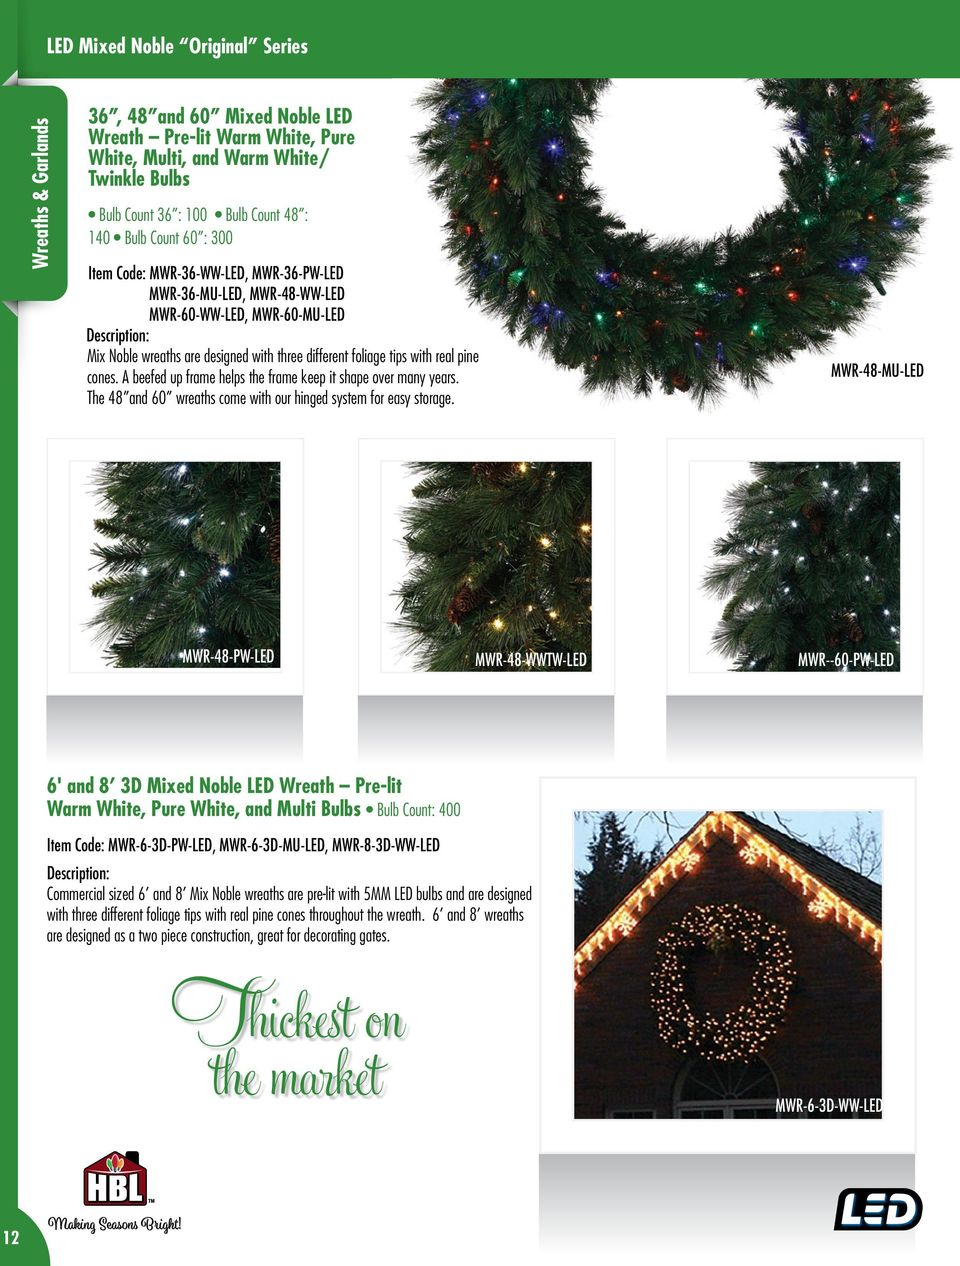 Welcome And Enjoy Our Innovative Quality Holiday Product Line Pdf Developing A Circuit That Will Use Many Leds Mixing Ordinary 5mm With Real Pine Cones Beefed Up Frame Helps The Keep It Shape Over